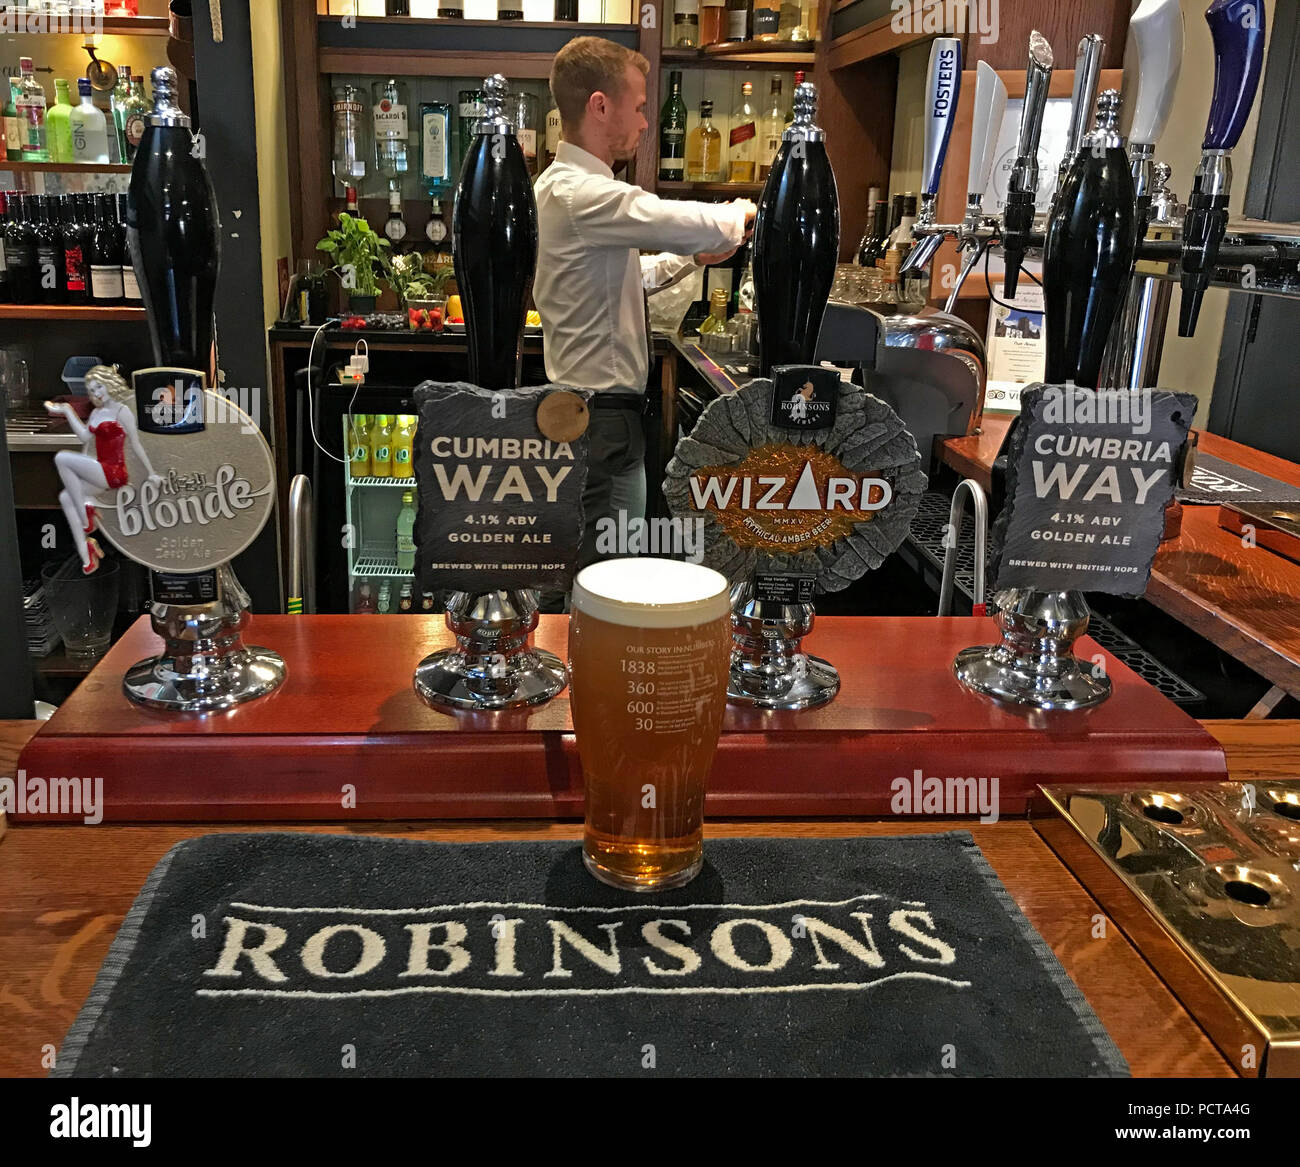 Frederic Robinson Ales, on a bar, Parr Arms,Grappenhall,Warrington,Cheshire,North West England,UK Stock Photo